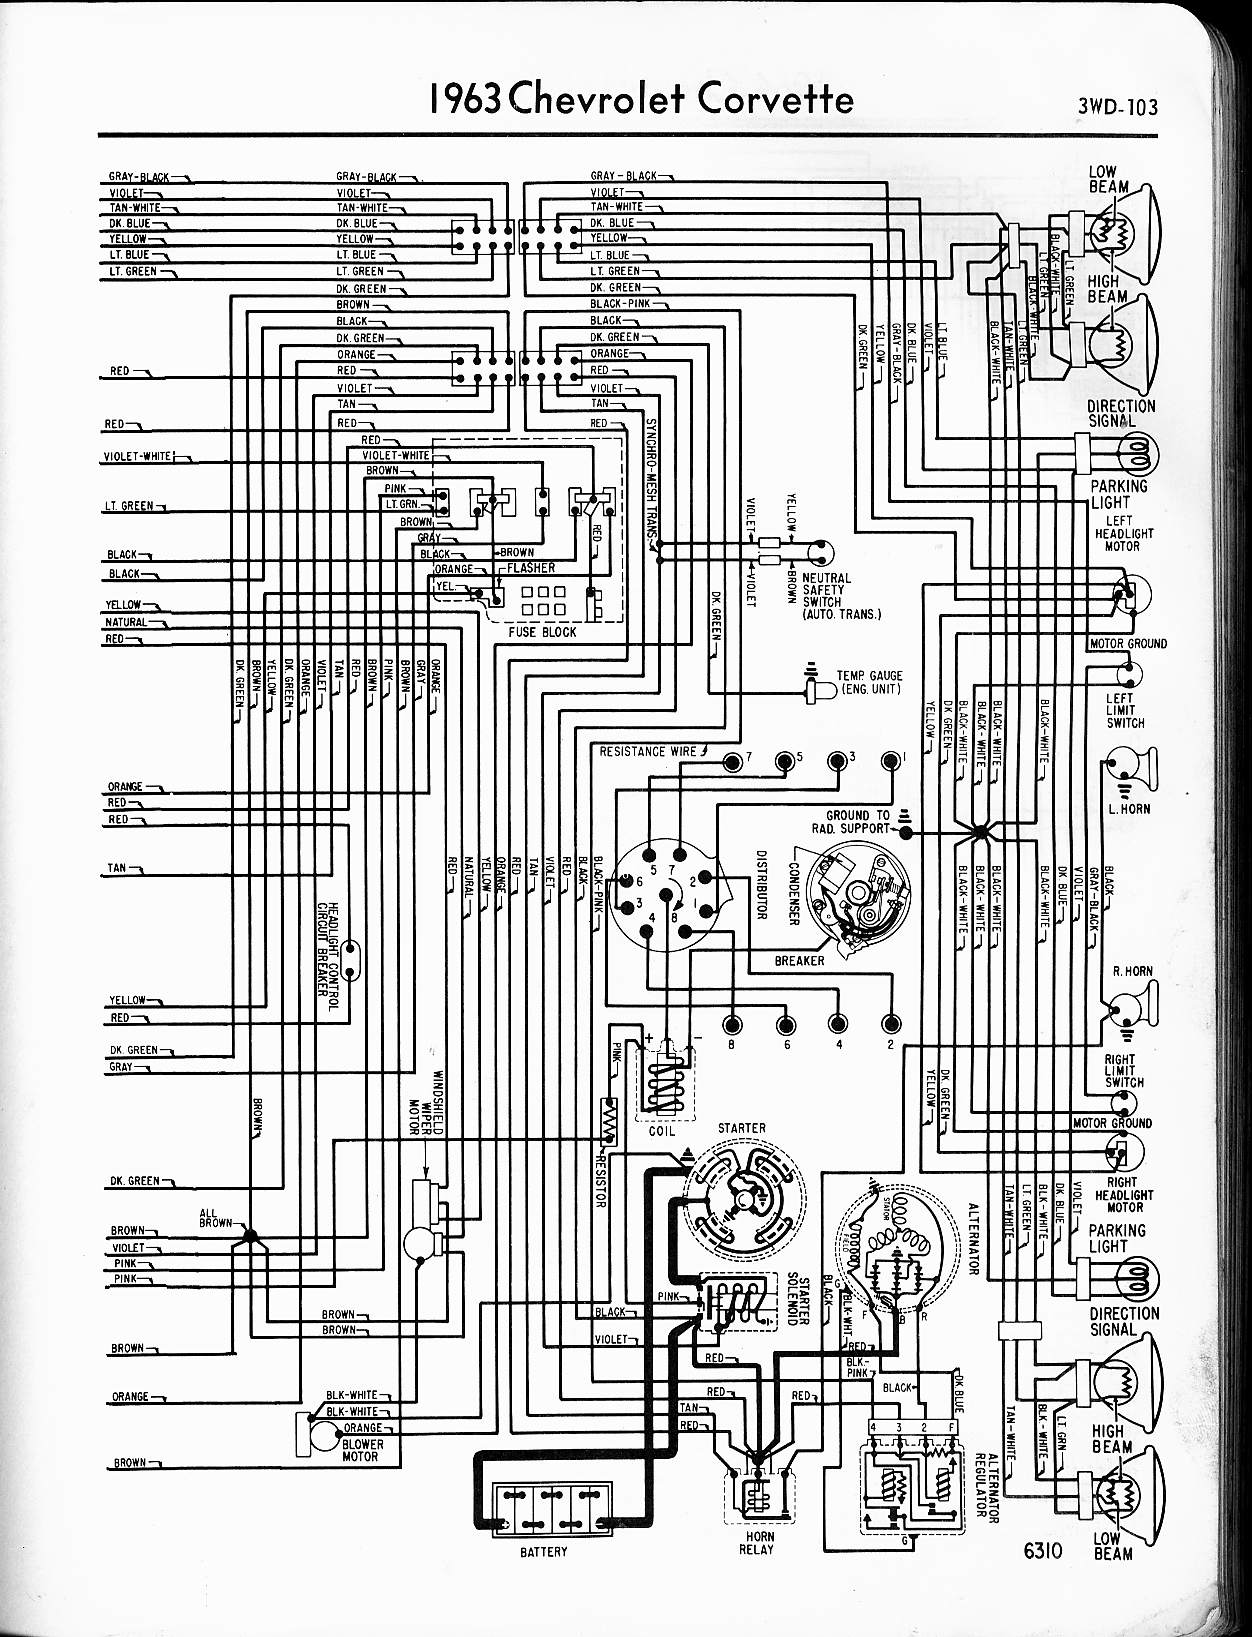 57 65 Chevy Wiring Diagrams 1960 Impala Diagram 1963 Corvette Right